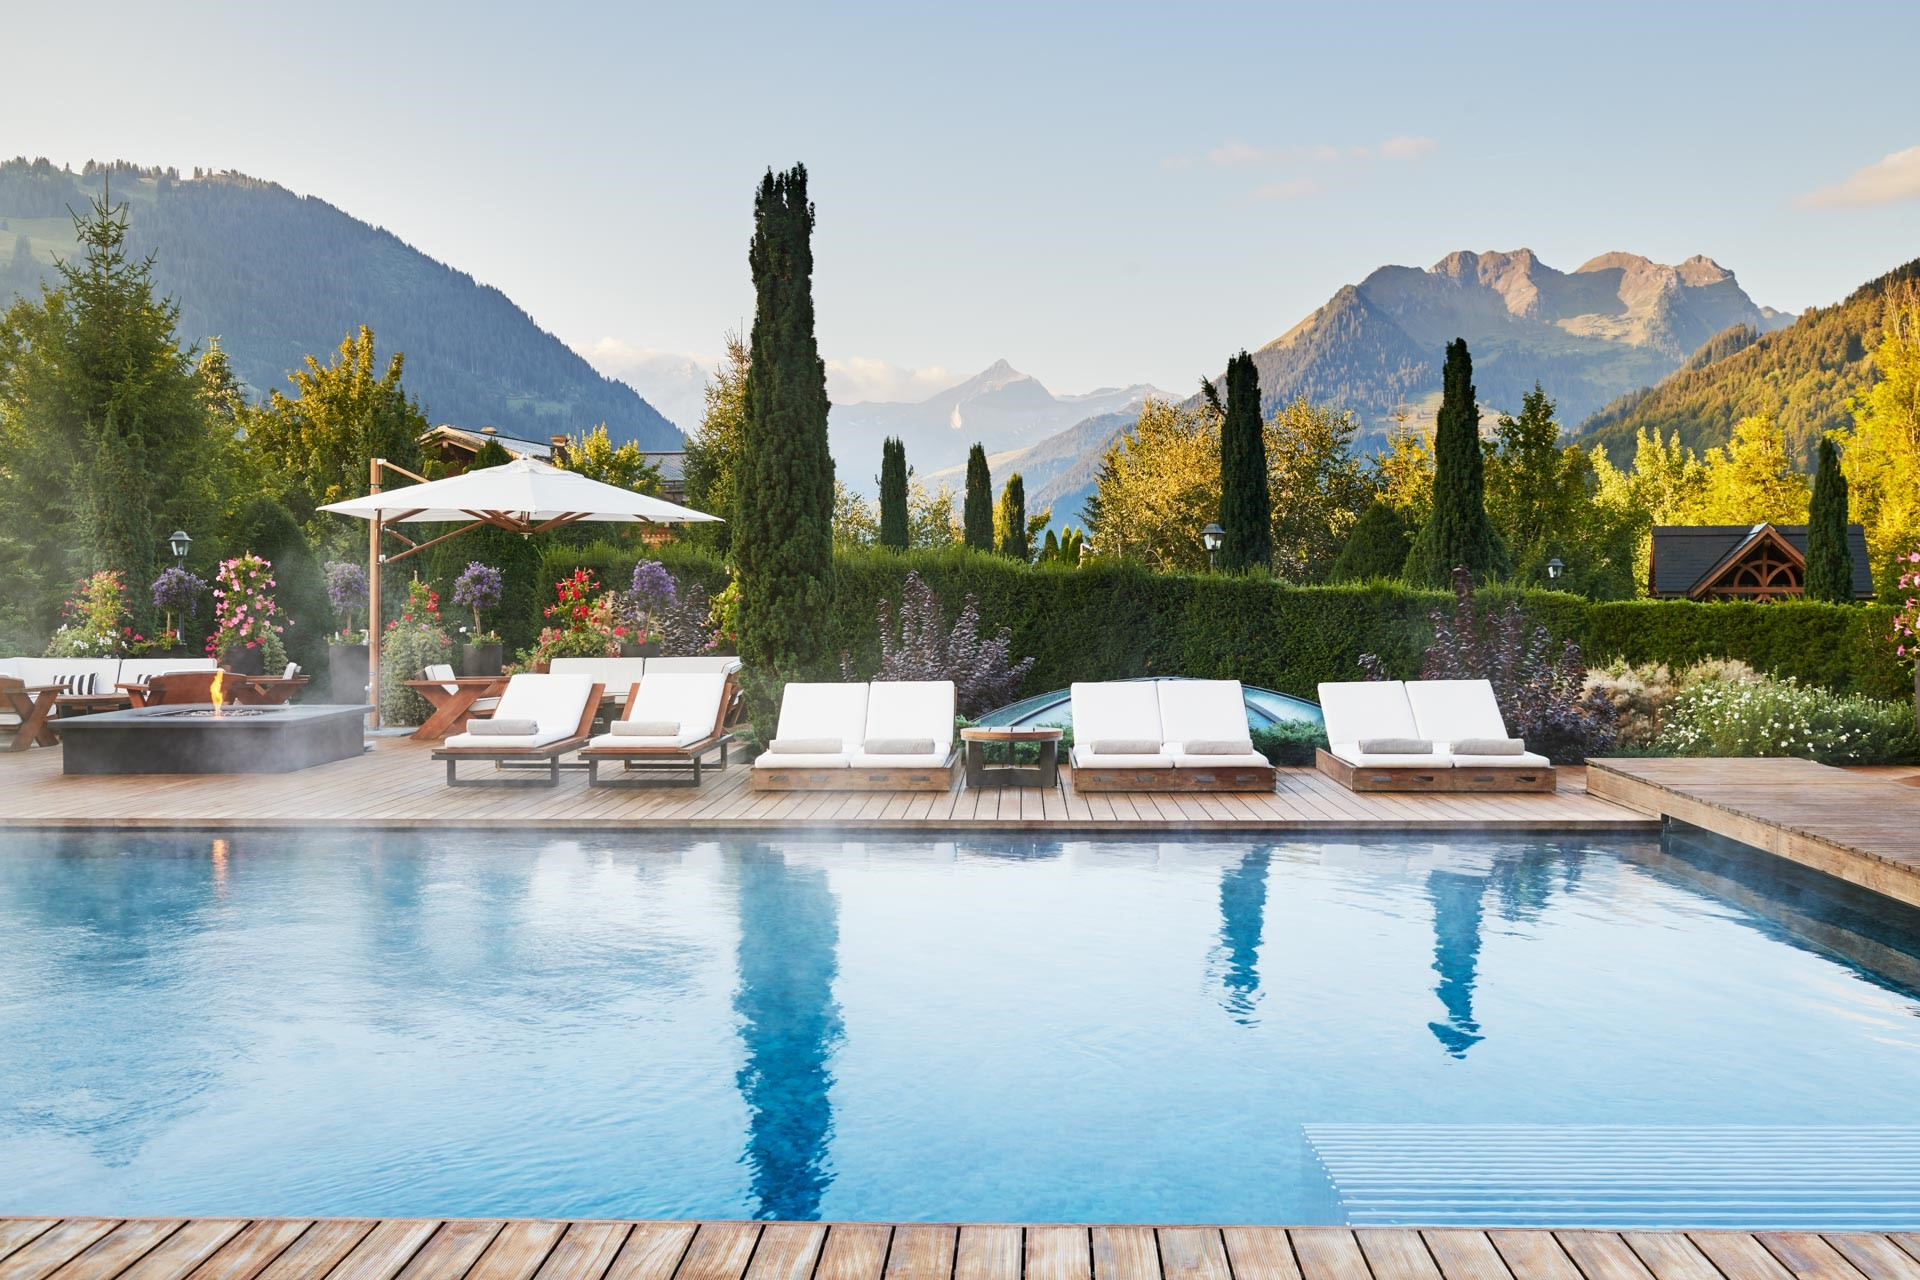 The hotel pool at the Alpina Gstaad